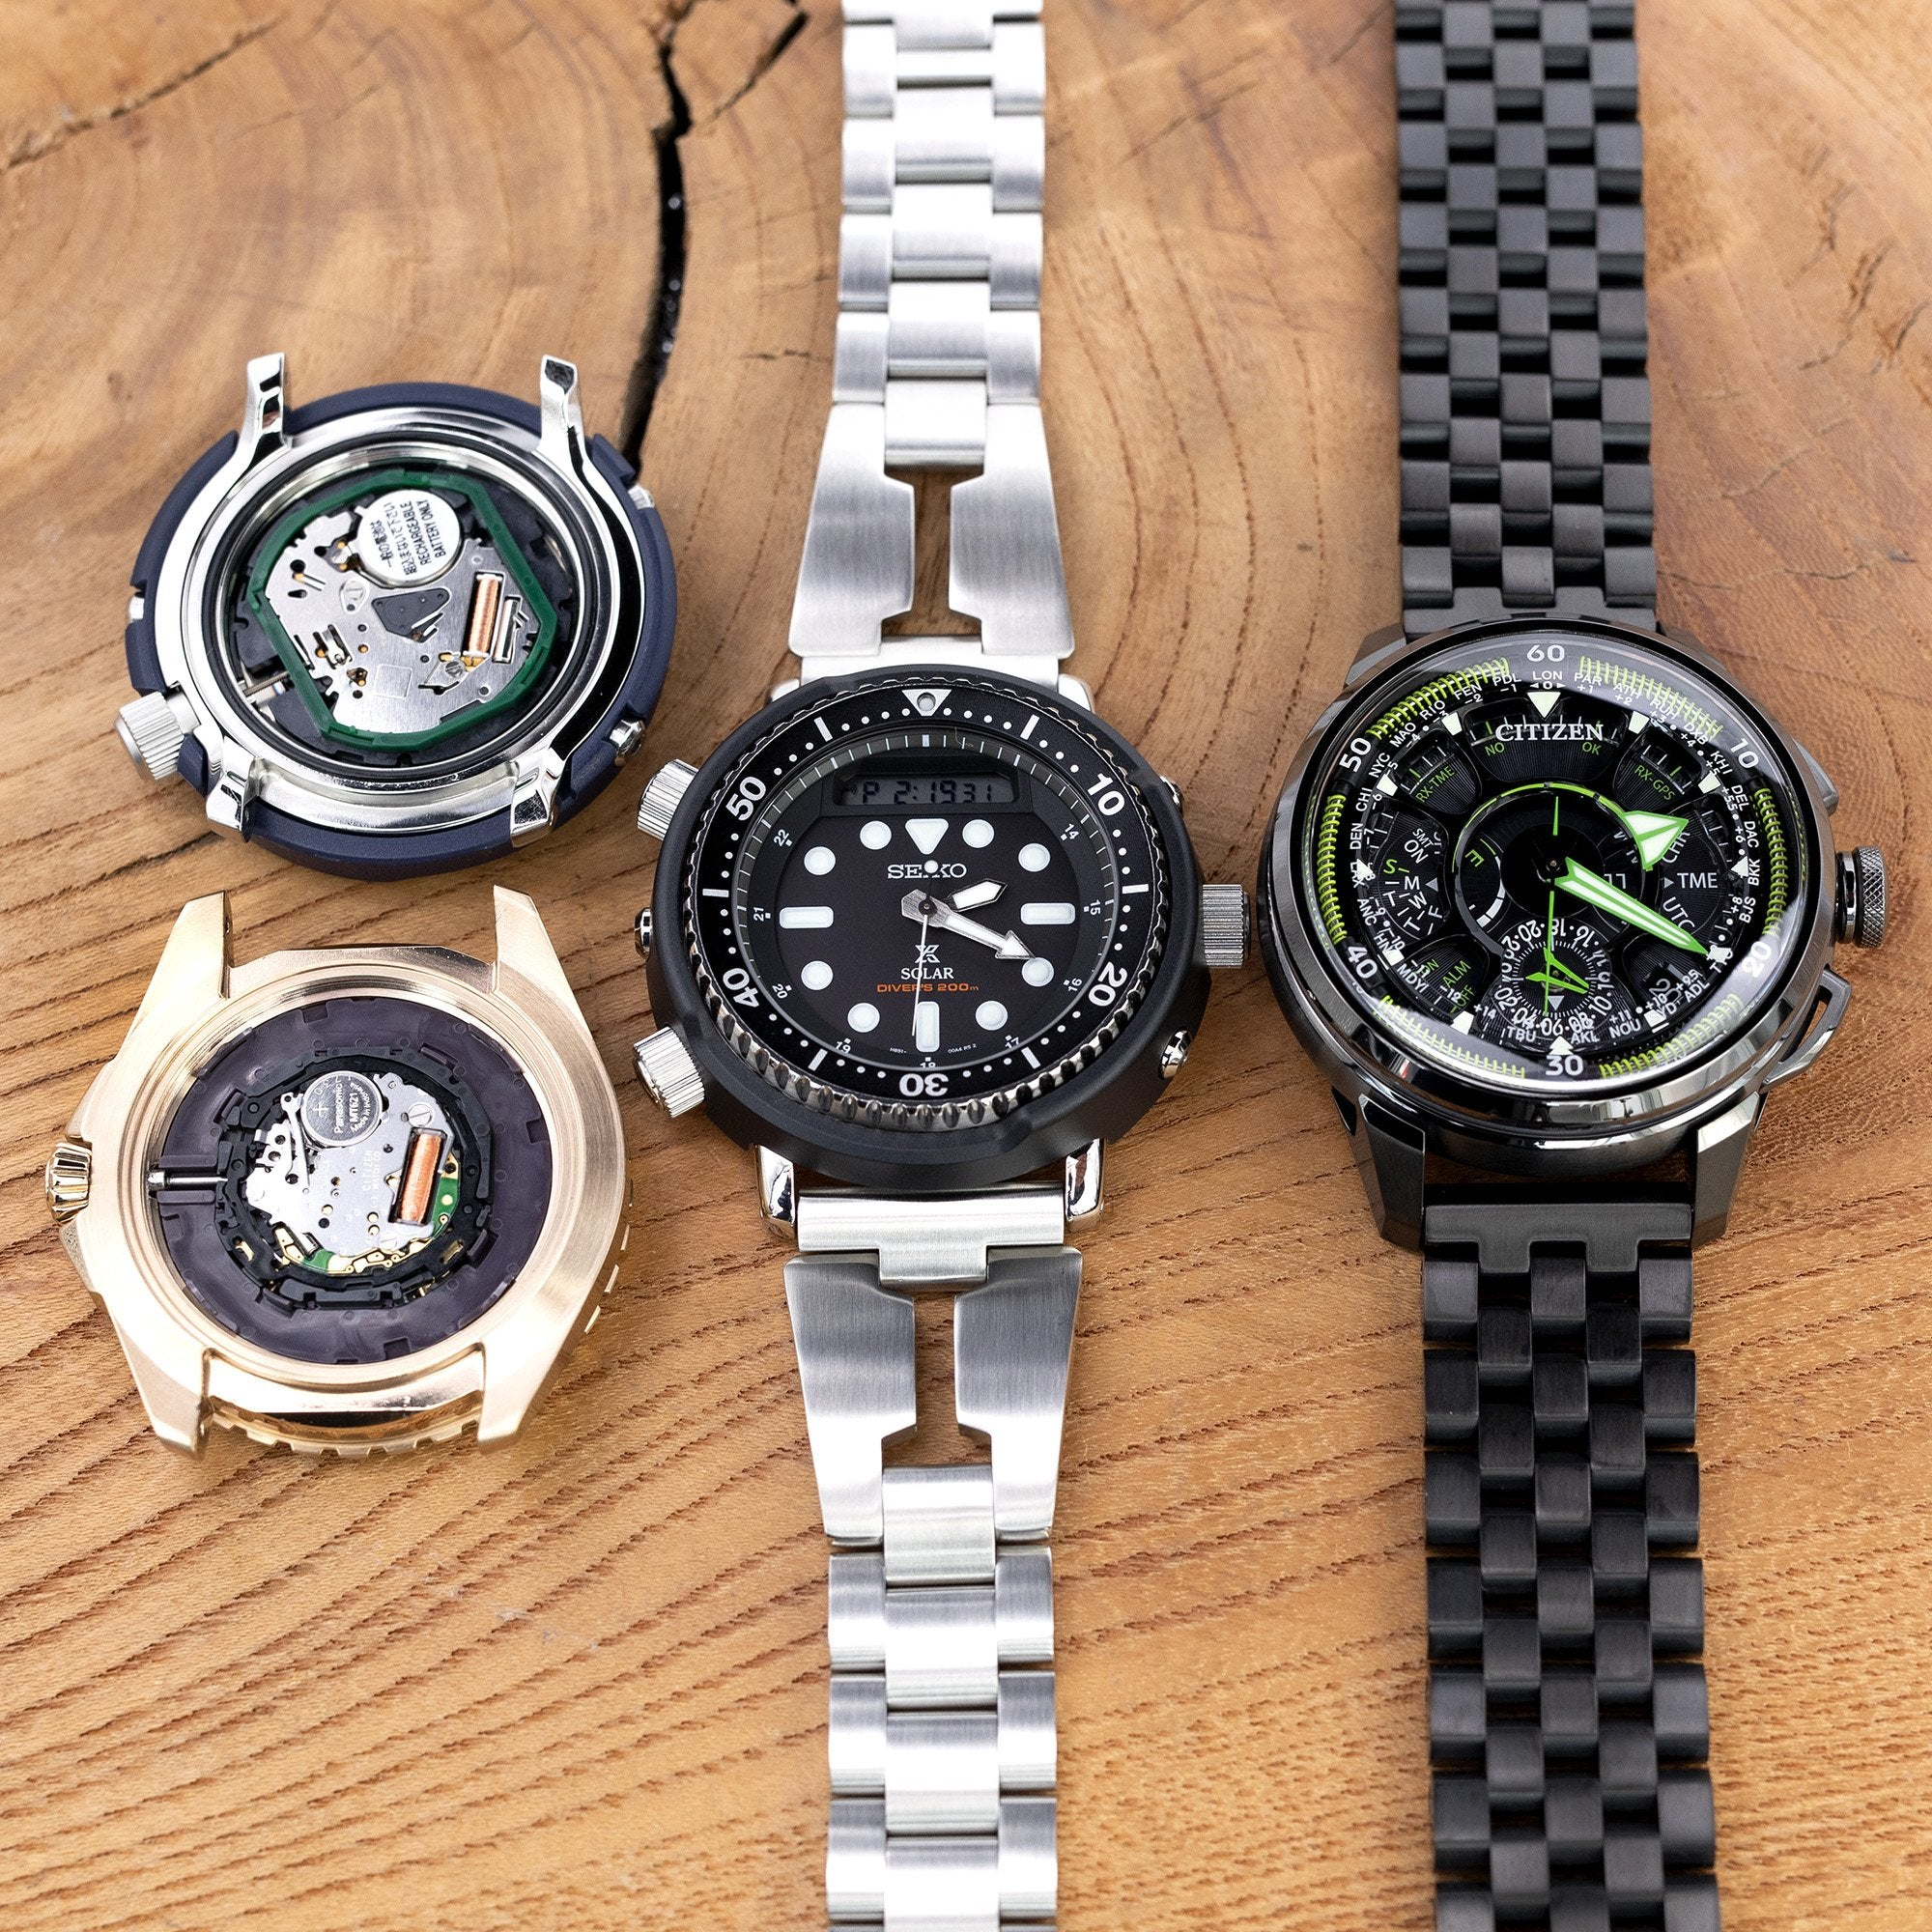 The battle of Titans: Citizen Eco-Drive vs. Seiko Solar Movement